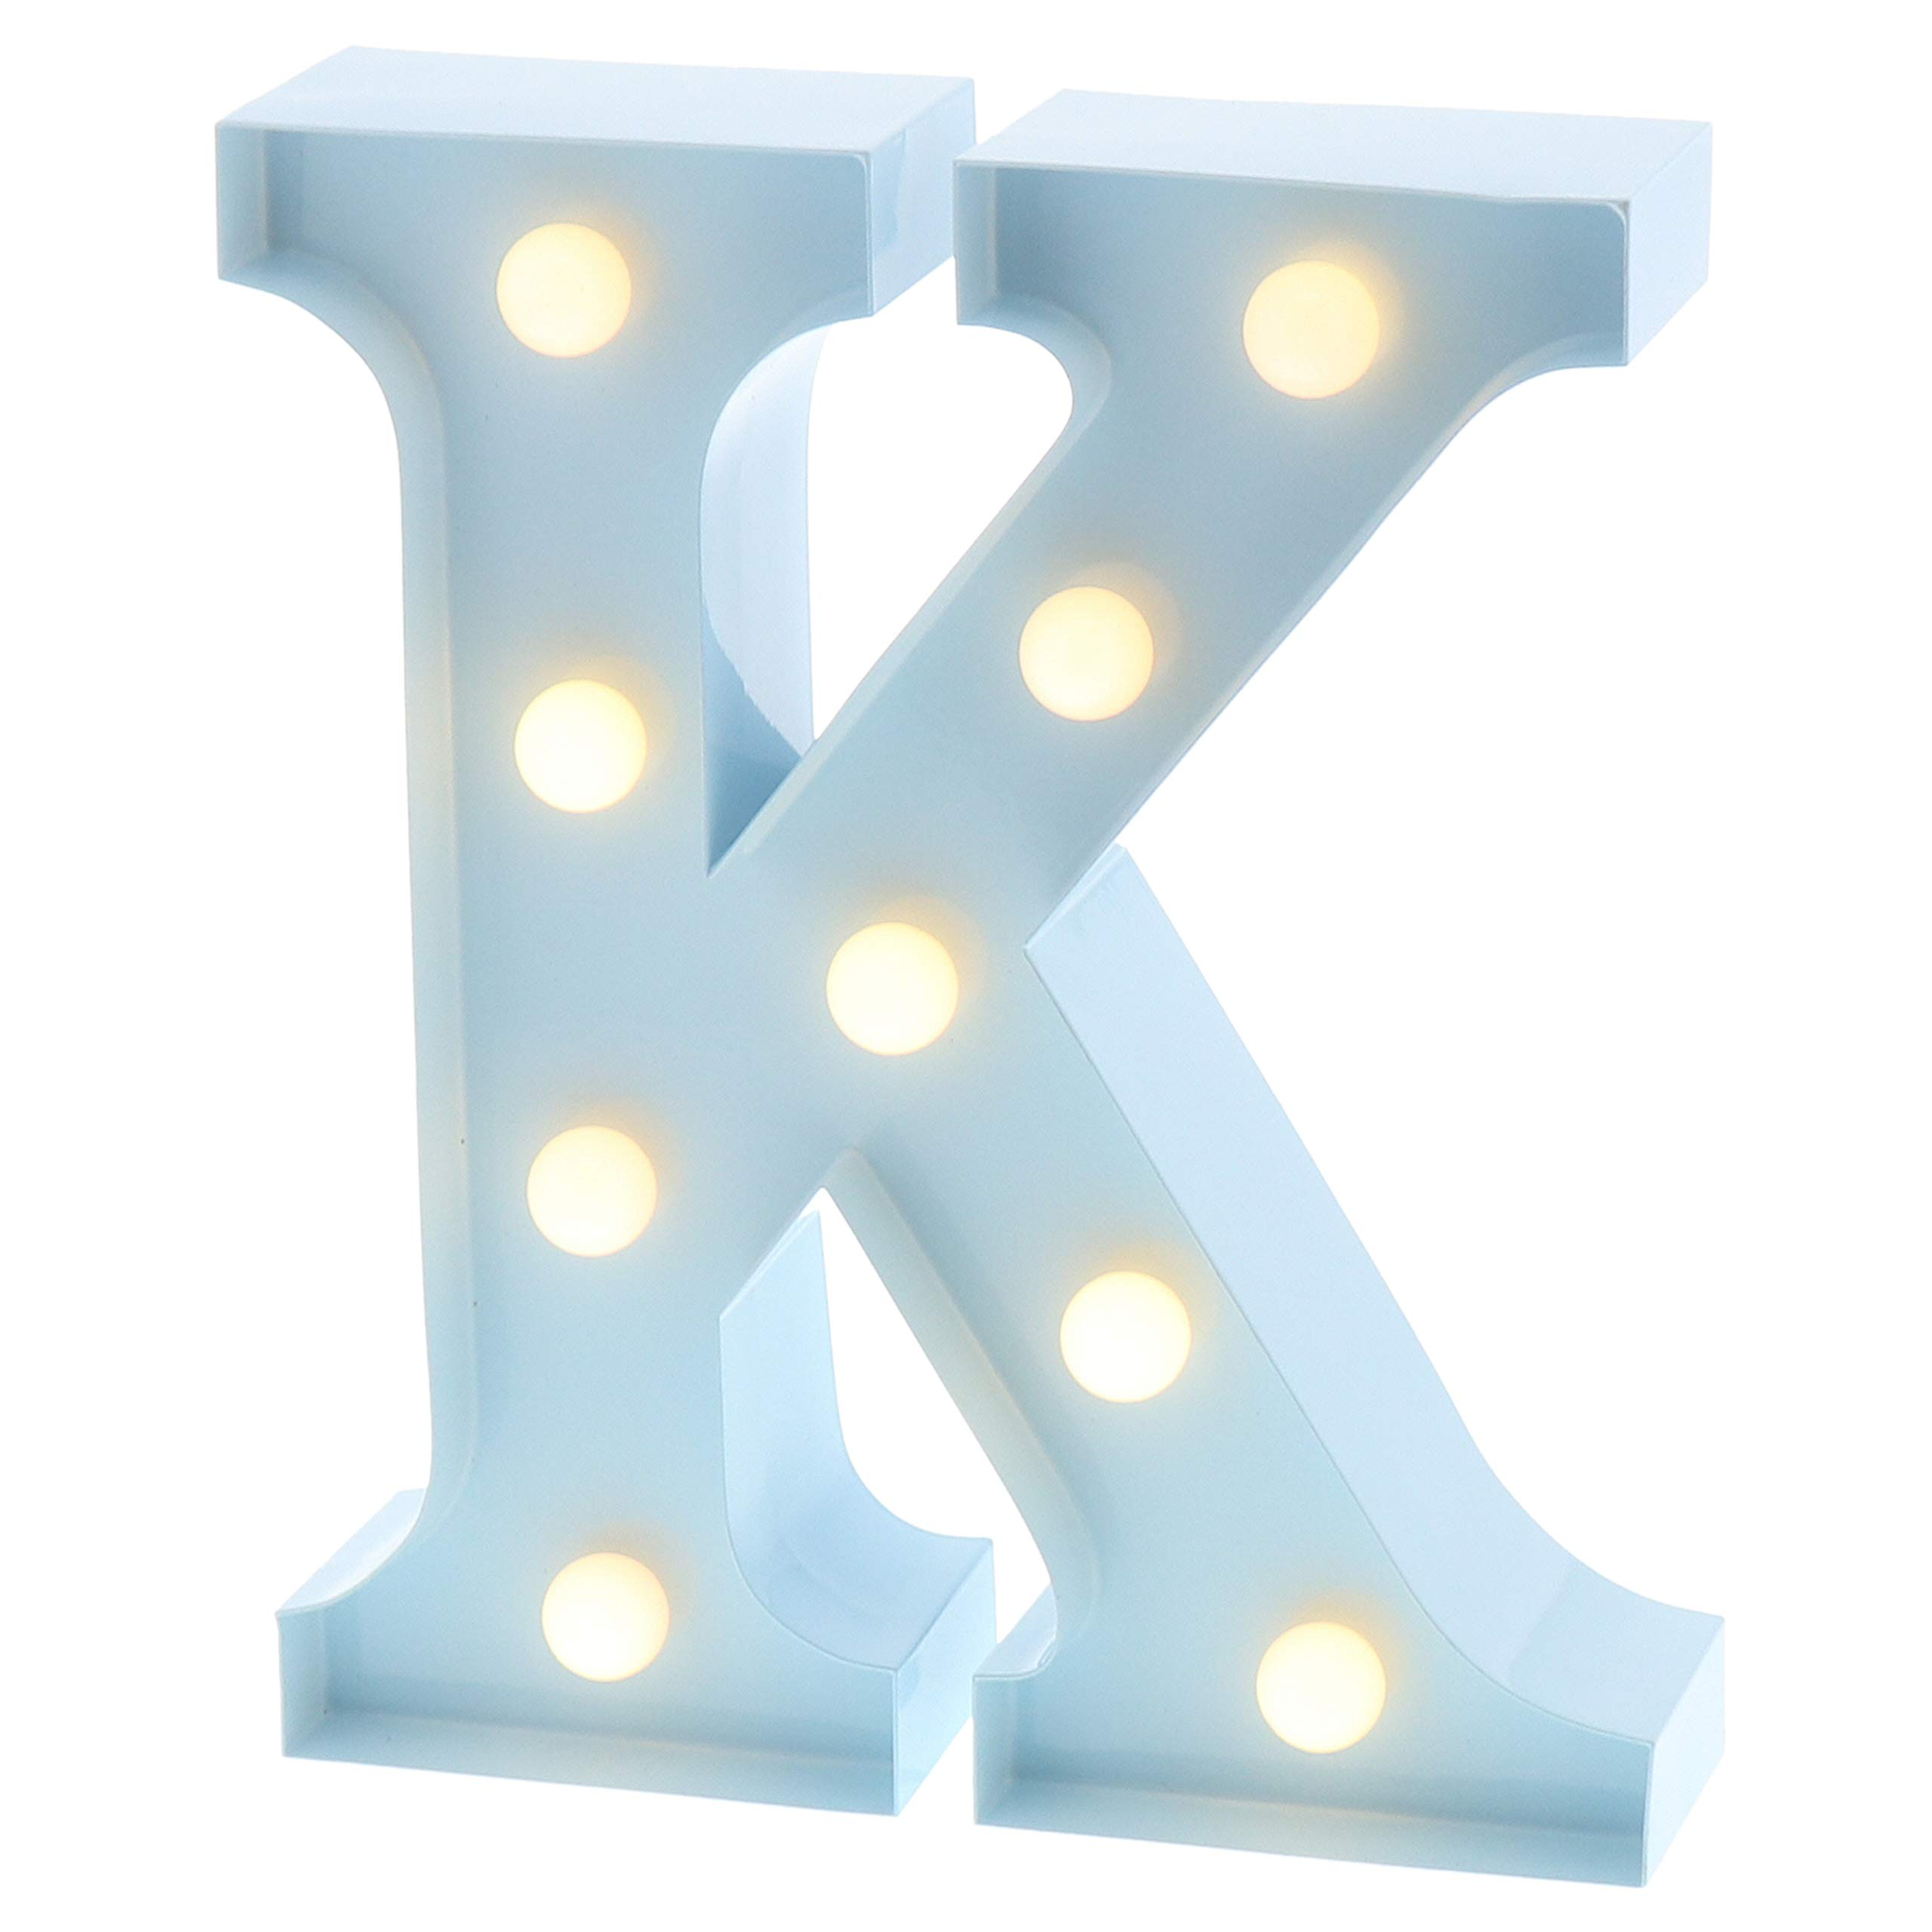 "Barnyard Designs Metal Marquee Letter K Light up Wall Initial Nursery Letter, Home and Event Decoration 9"" (Baby Blue)"